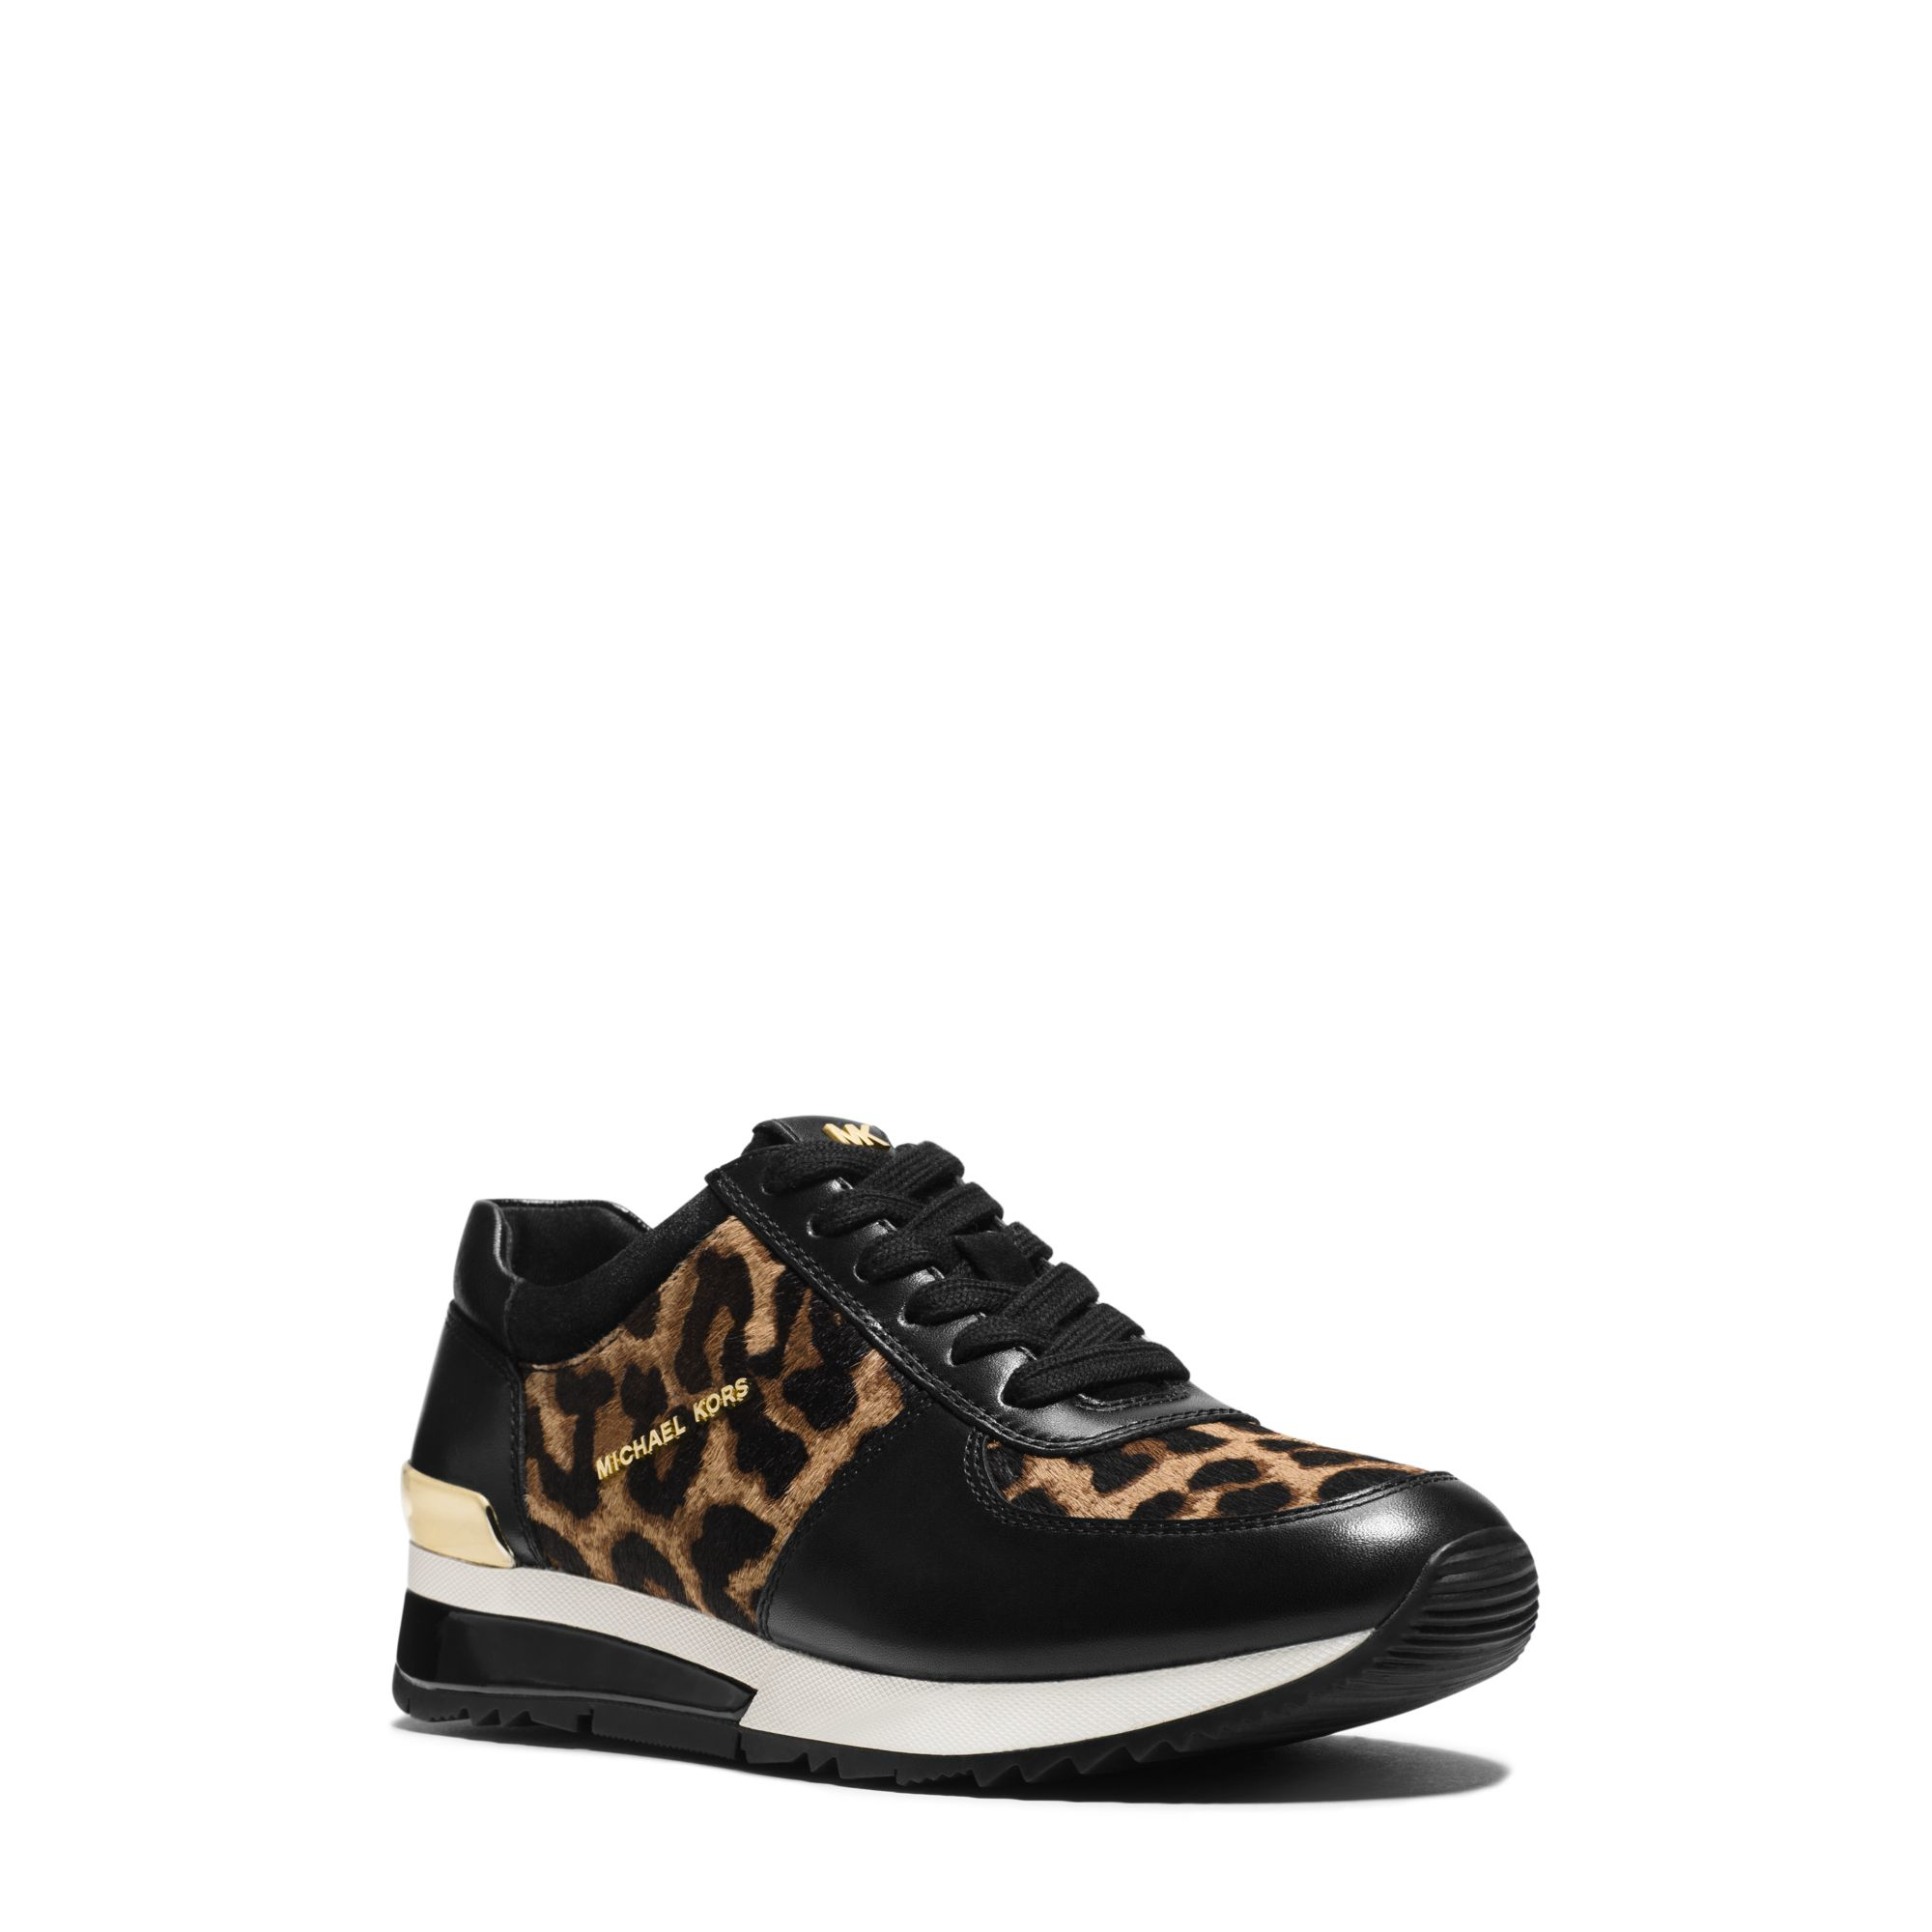 michael kors allie leopard calf hair and leather sneaker in natural lyst. Black Bedroom Furniture Sets. Home Design Ideas